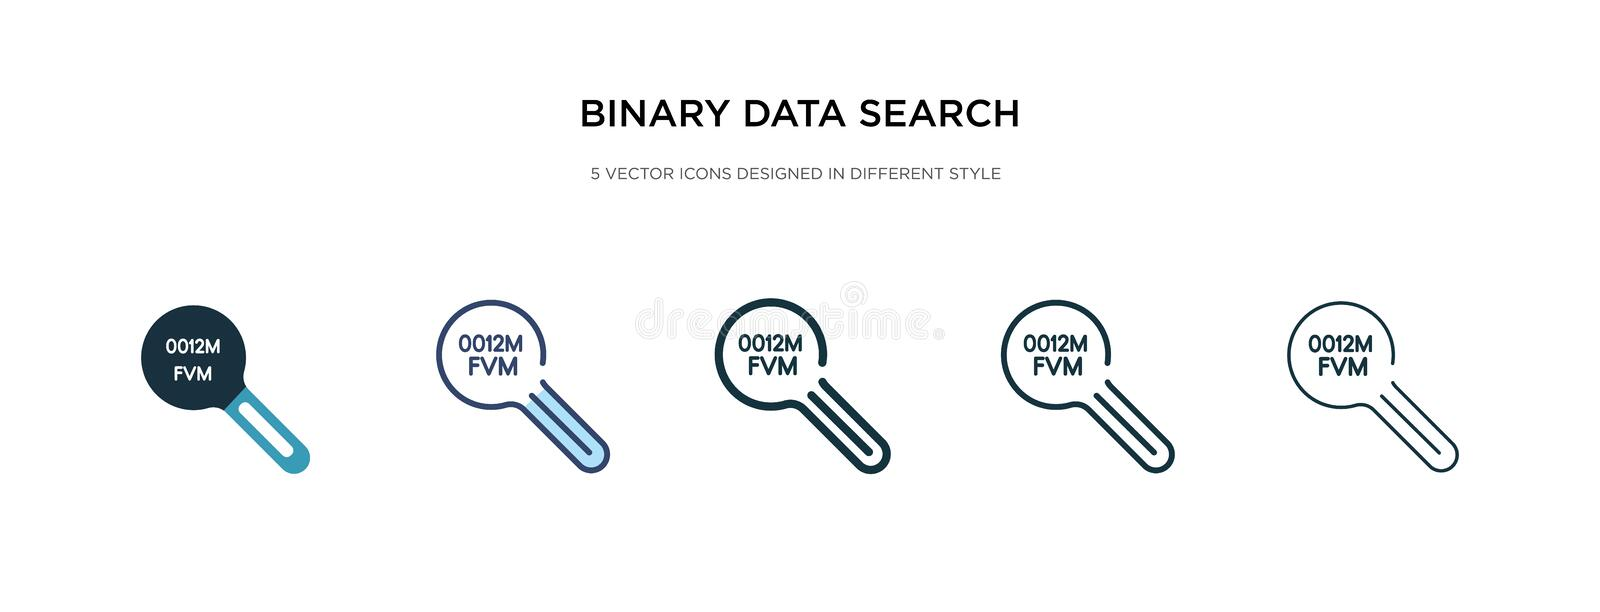 Binary data search icon in different style vector illustration. two colored and black binary data search vector icons designed in stock illustration